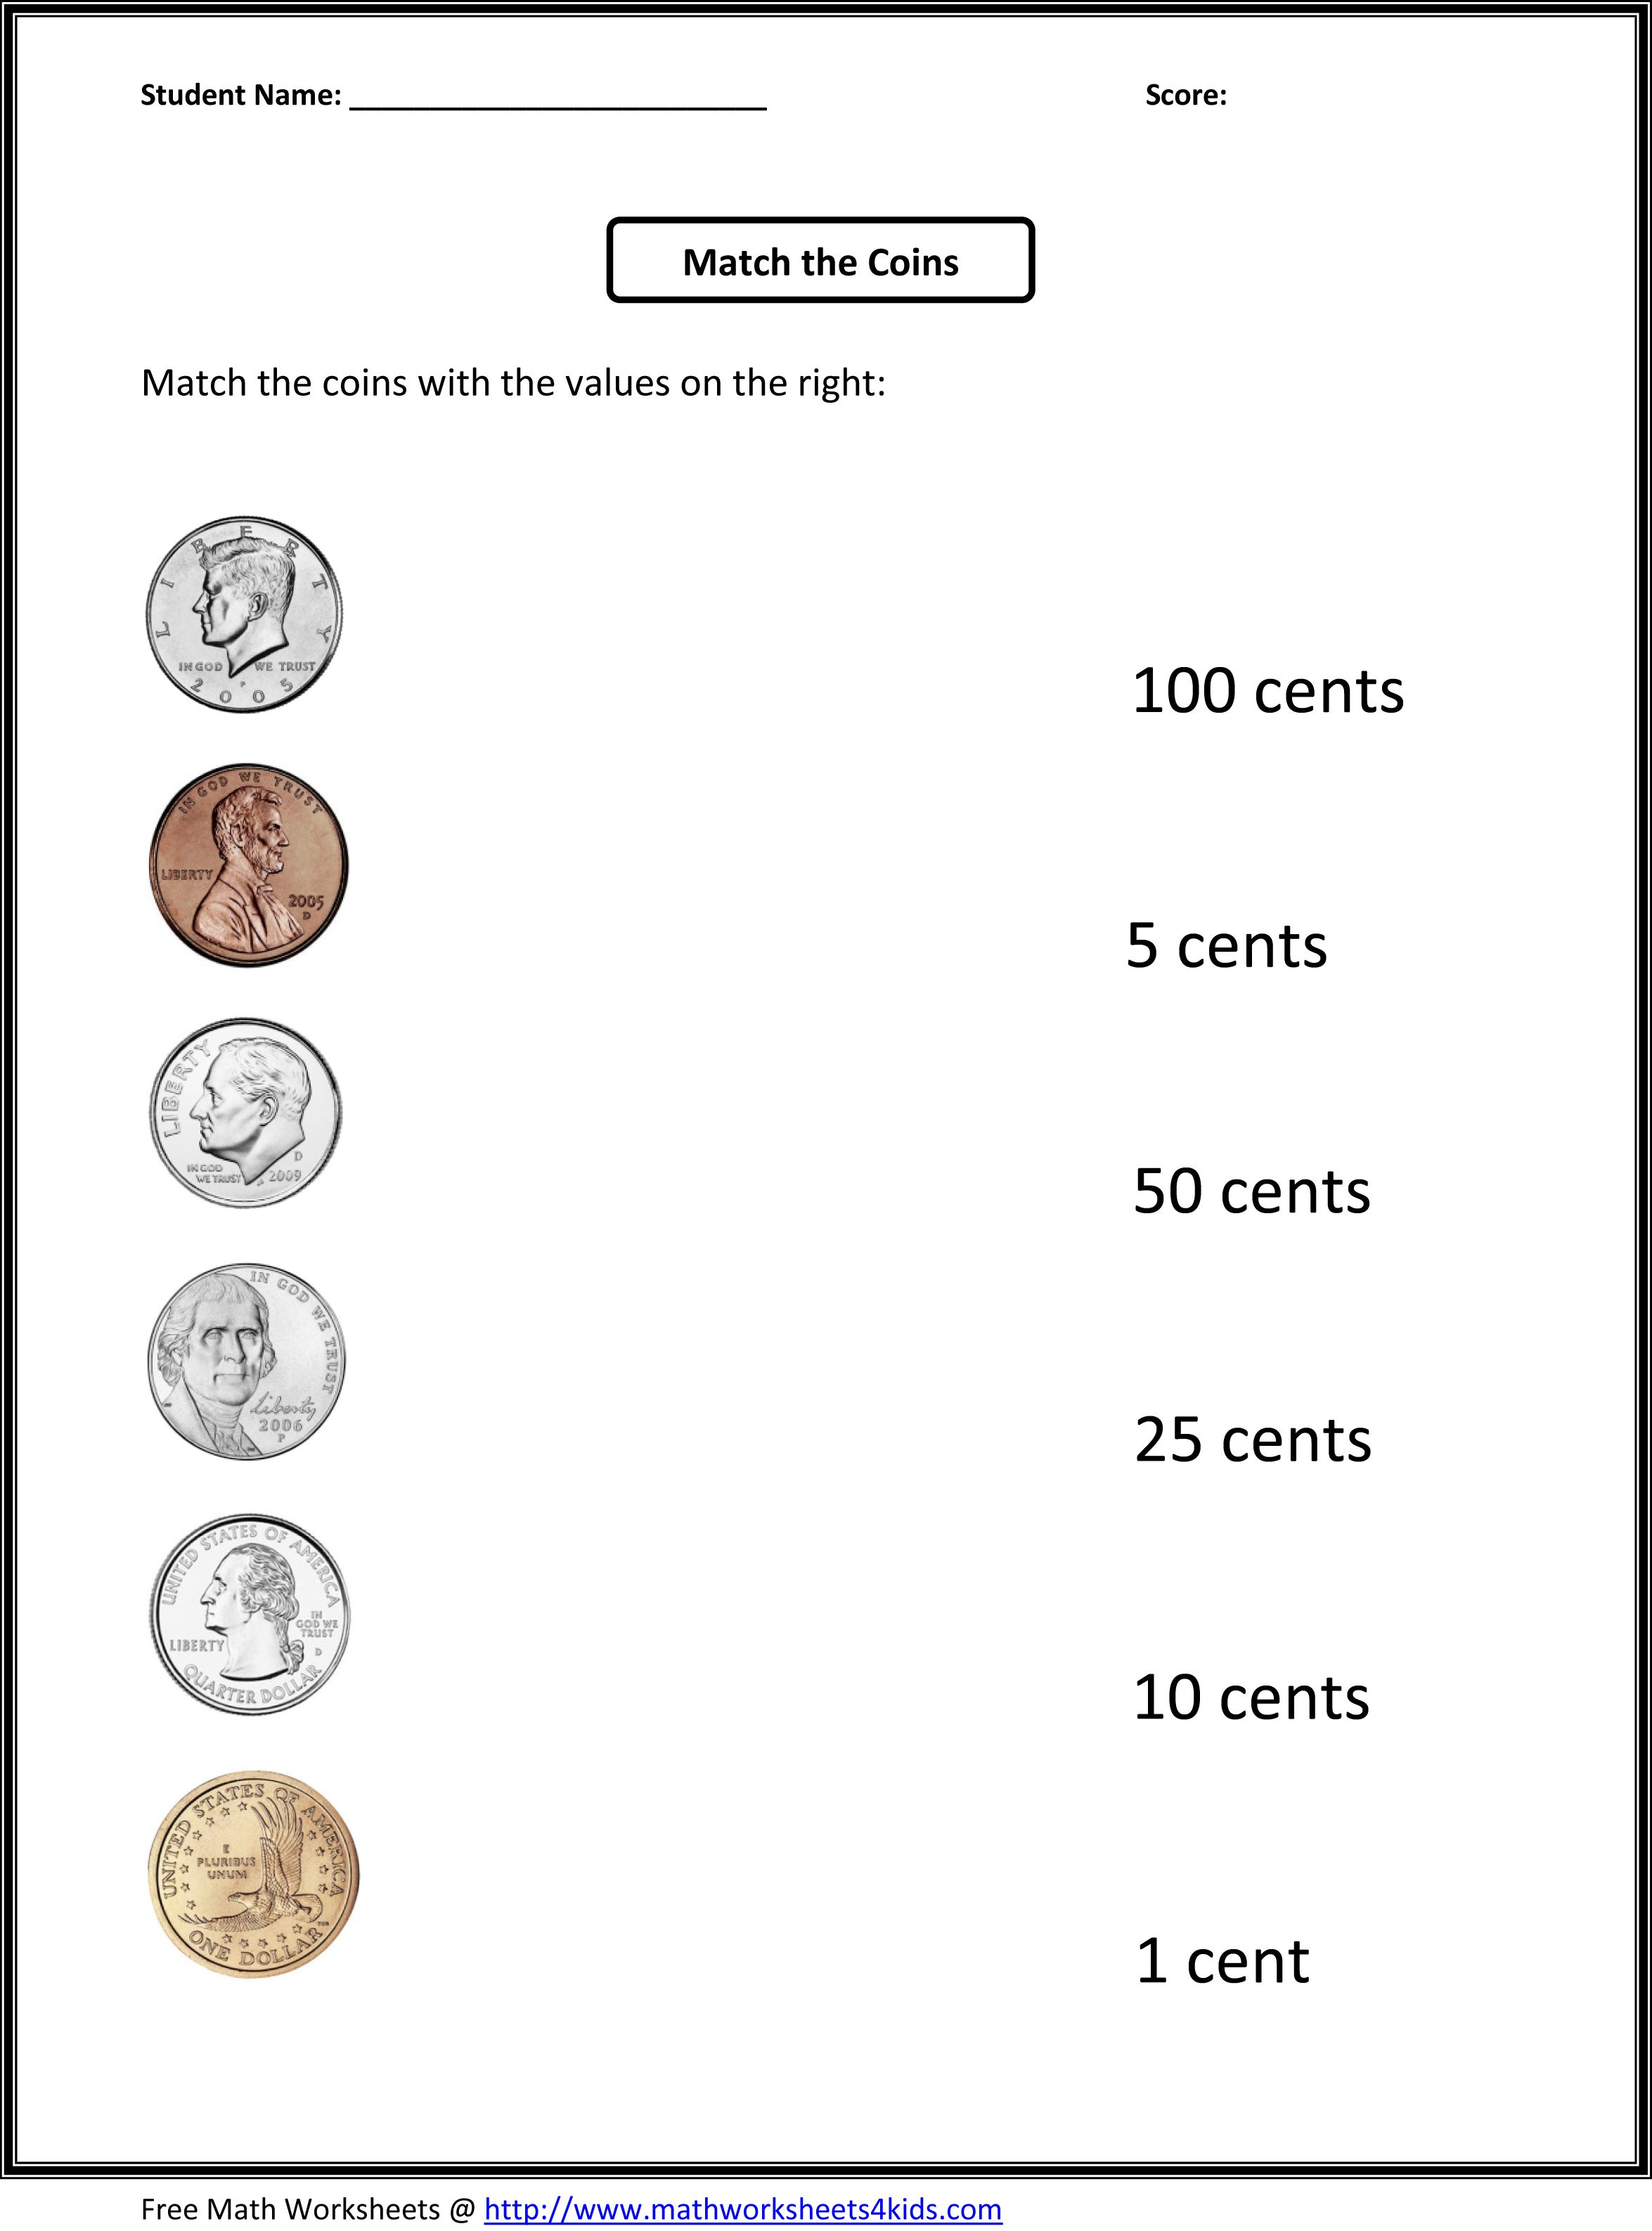 Coin-Values-Worksheet-Free  St Grade Math Sheets Addition Subtraction on word problems worksheet, practice worksheets, integers worksheets, anchor charts, multiplication division mental,